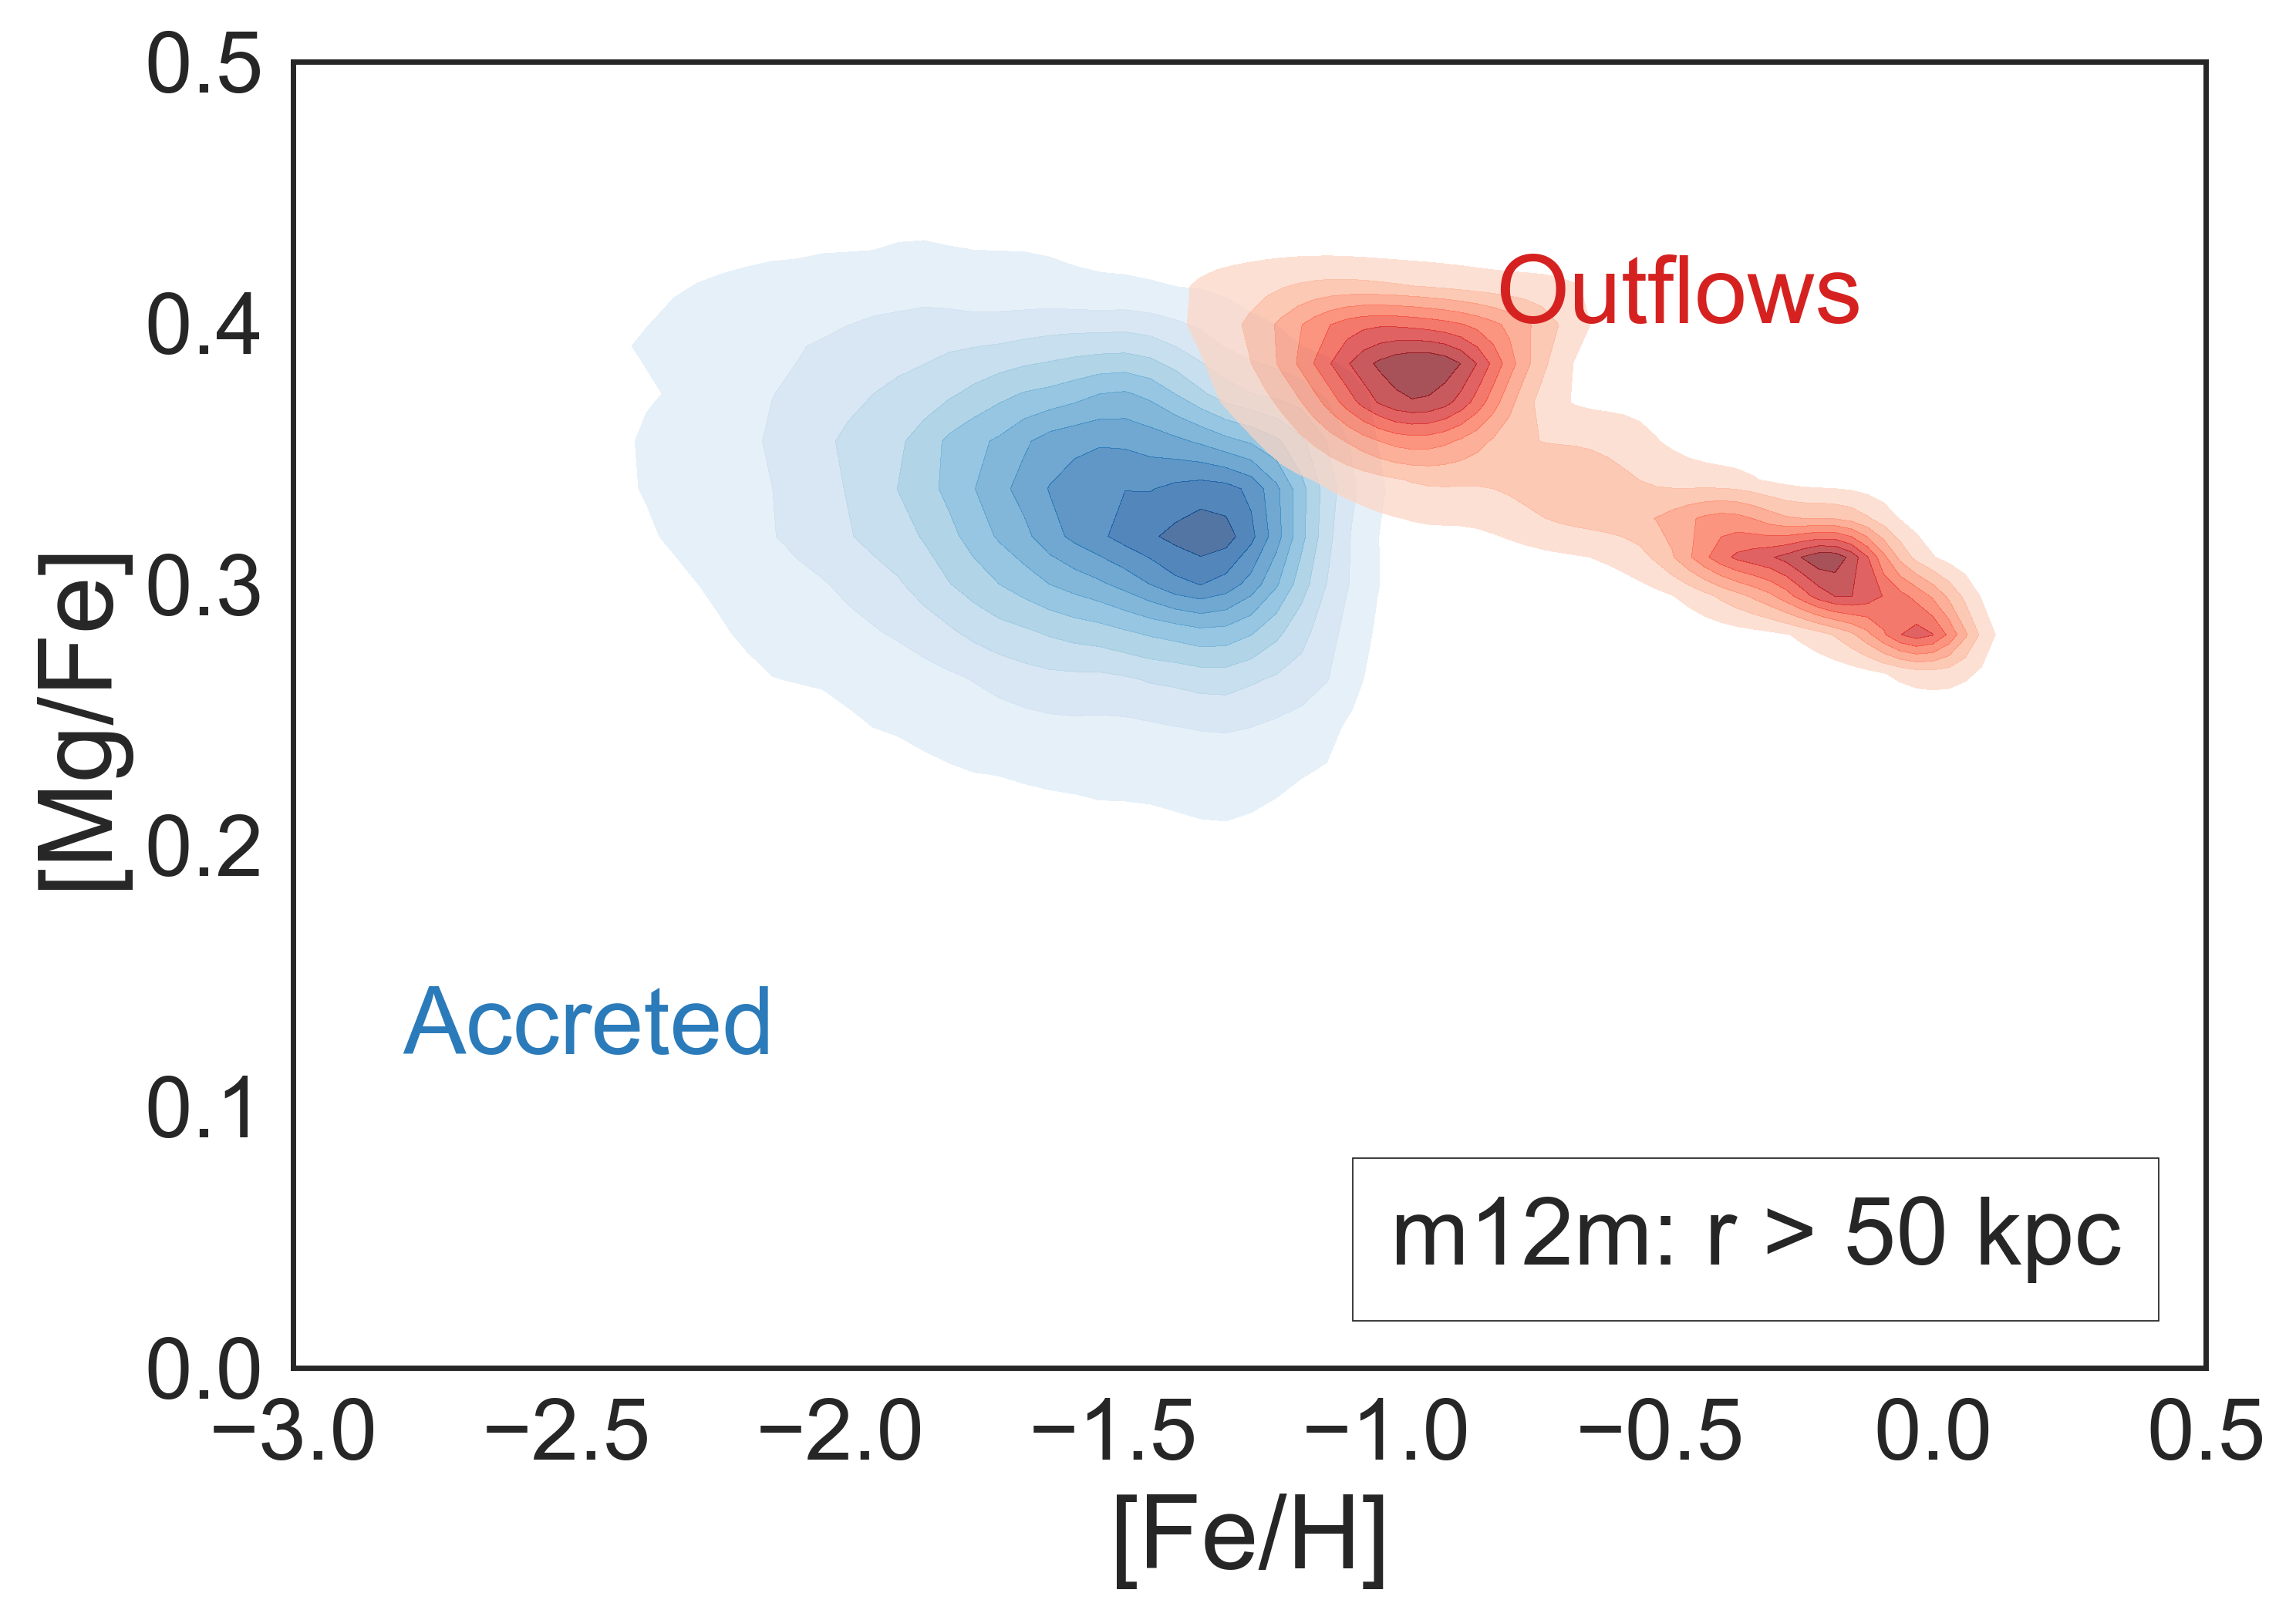 Kernel density estimate in [Mg/Fe] versus [Fe/H] for outer halo stars with